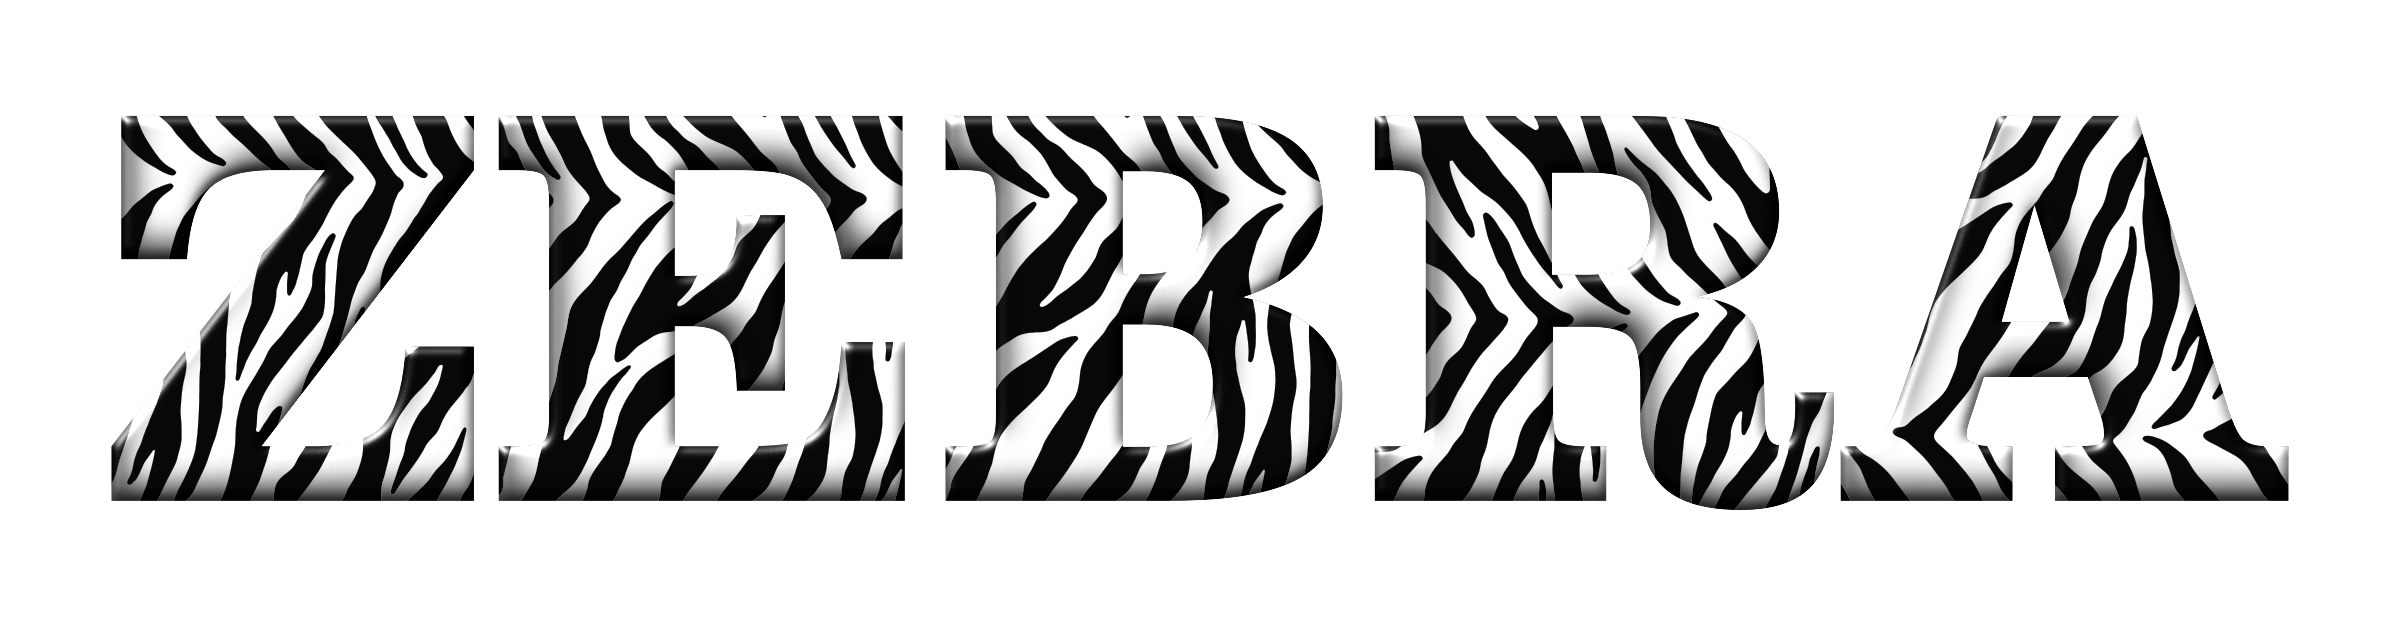 Zebra Typography Enhanced 2 by GDJ